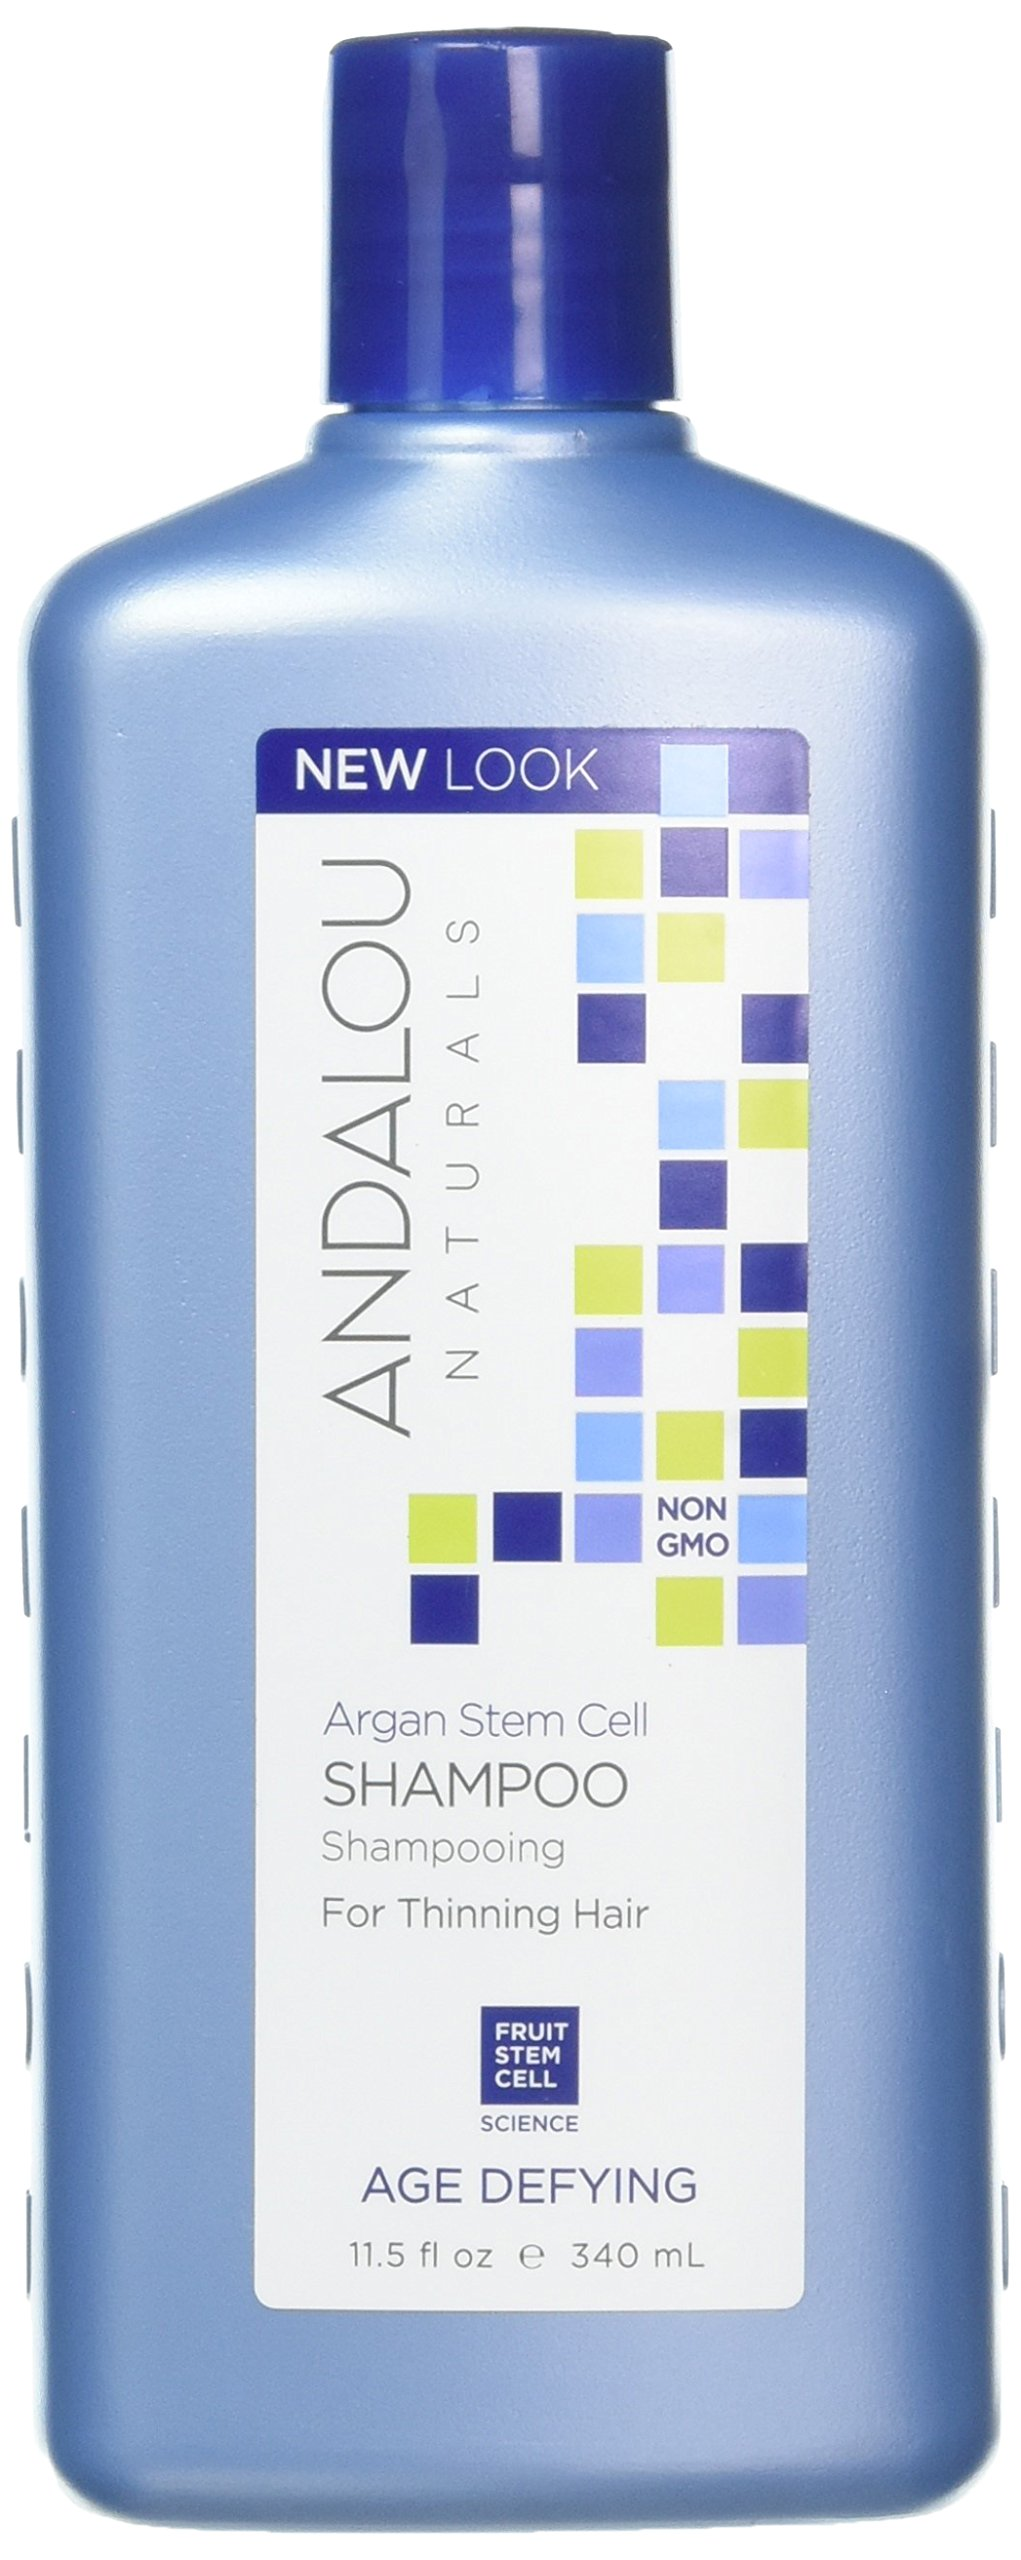 Andalou Naturals Argan Stem Cell Age Defying Shampoo, 11.5 Ounce by Andalou Naturals (Image #3)